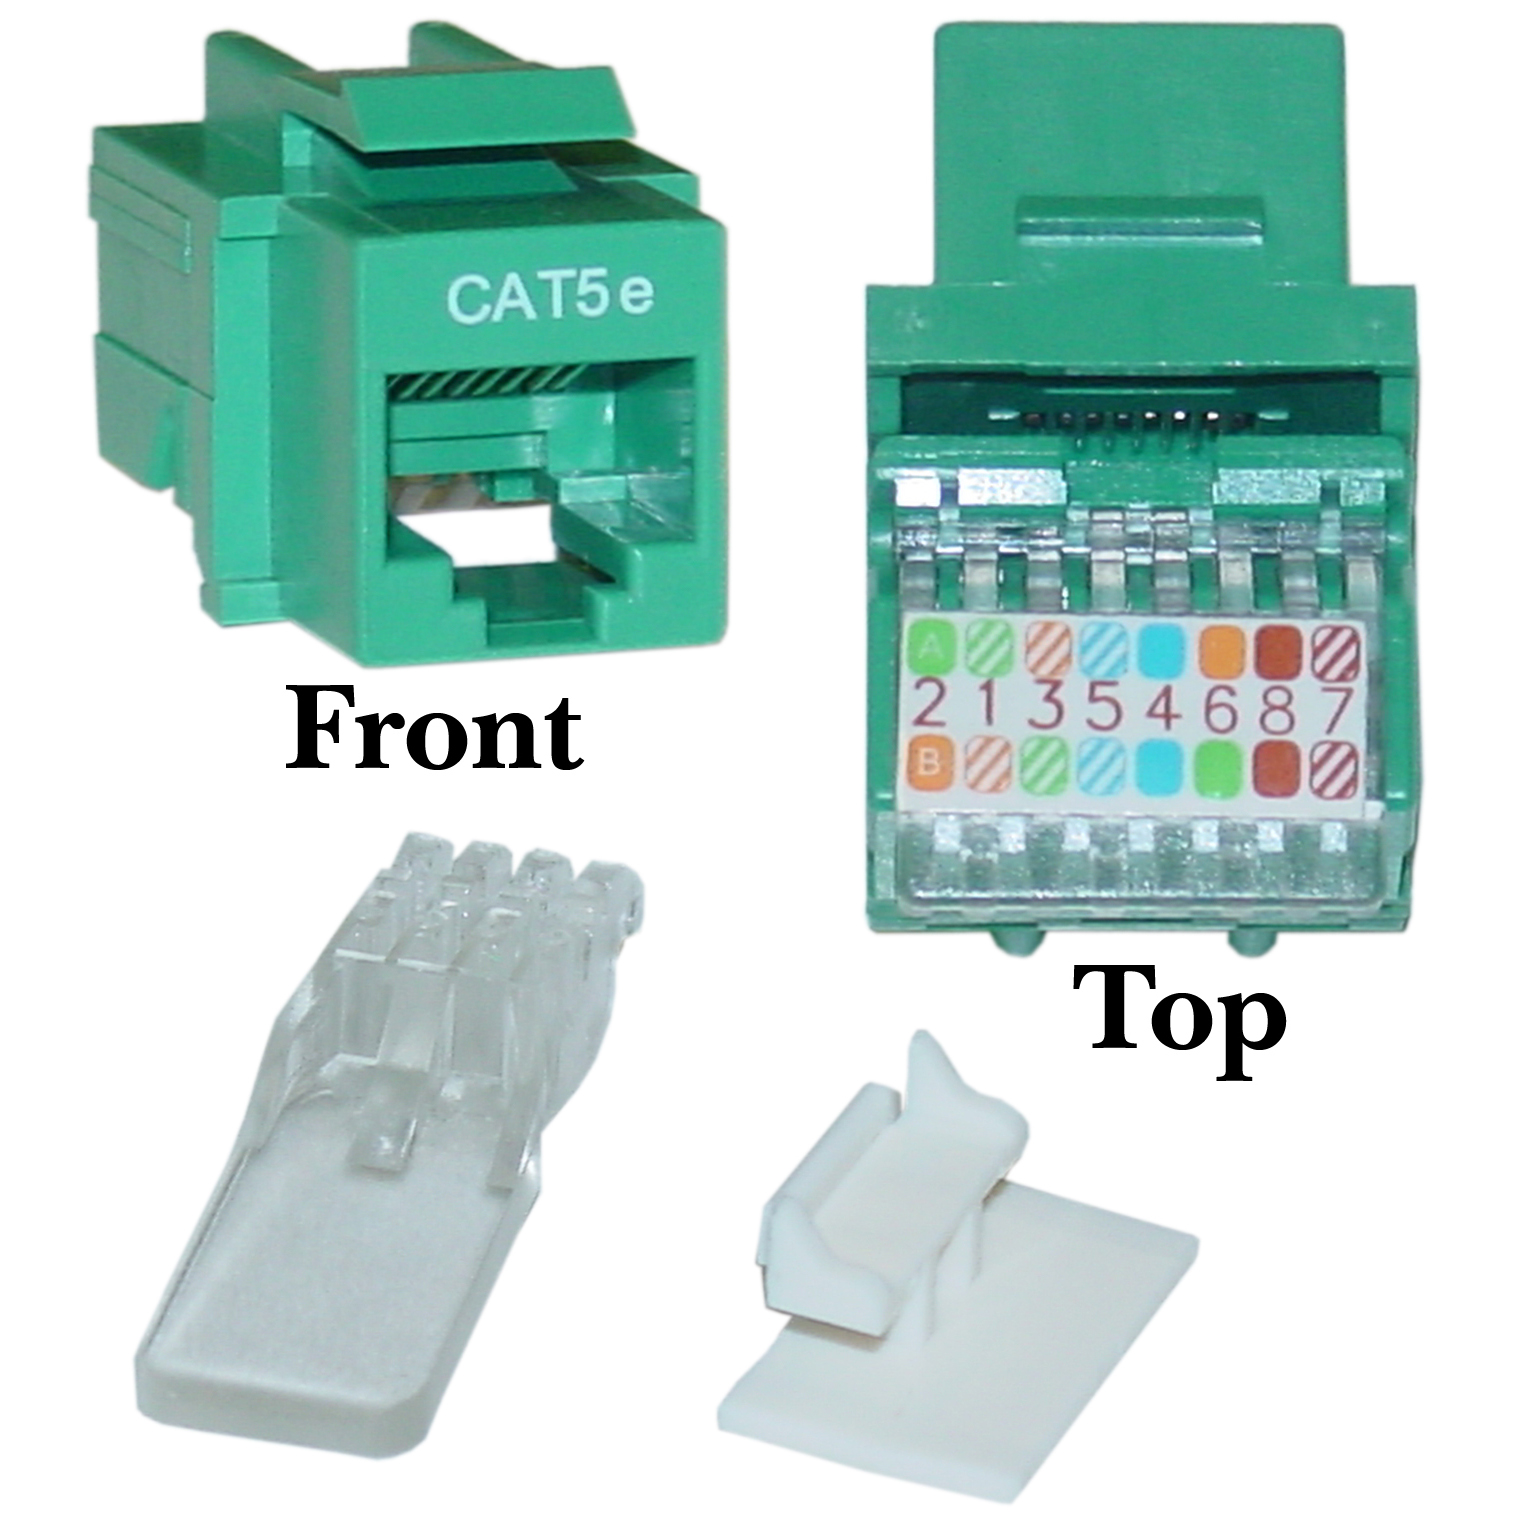 311 120gr green cat5e rj45 keystone jack toolless cablewholesale keystone jack wiring diagram at bayanpartner.co